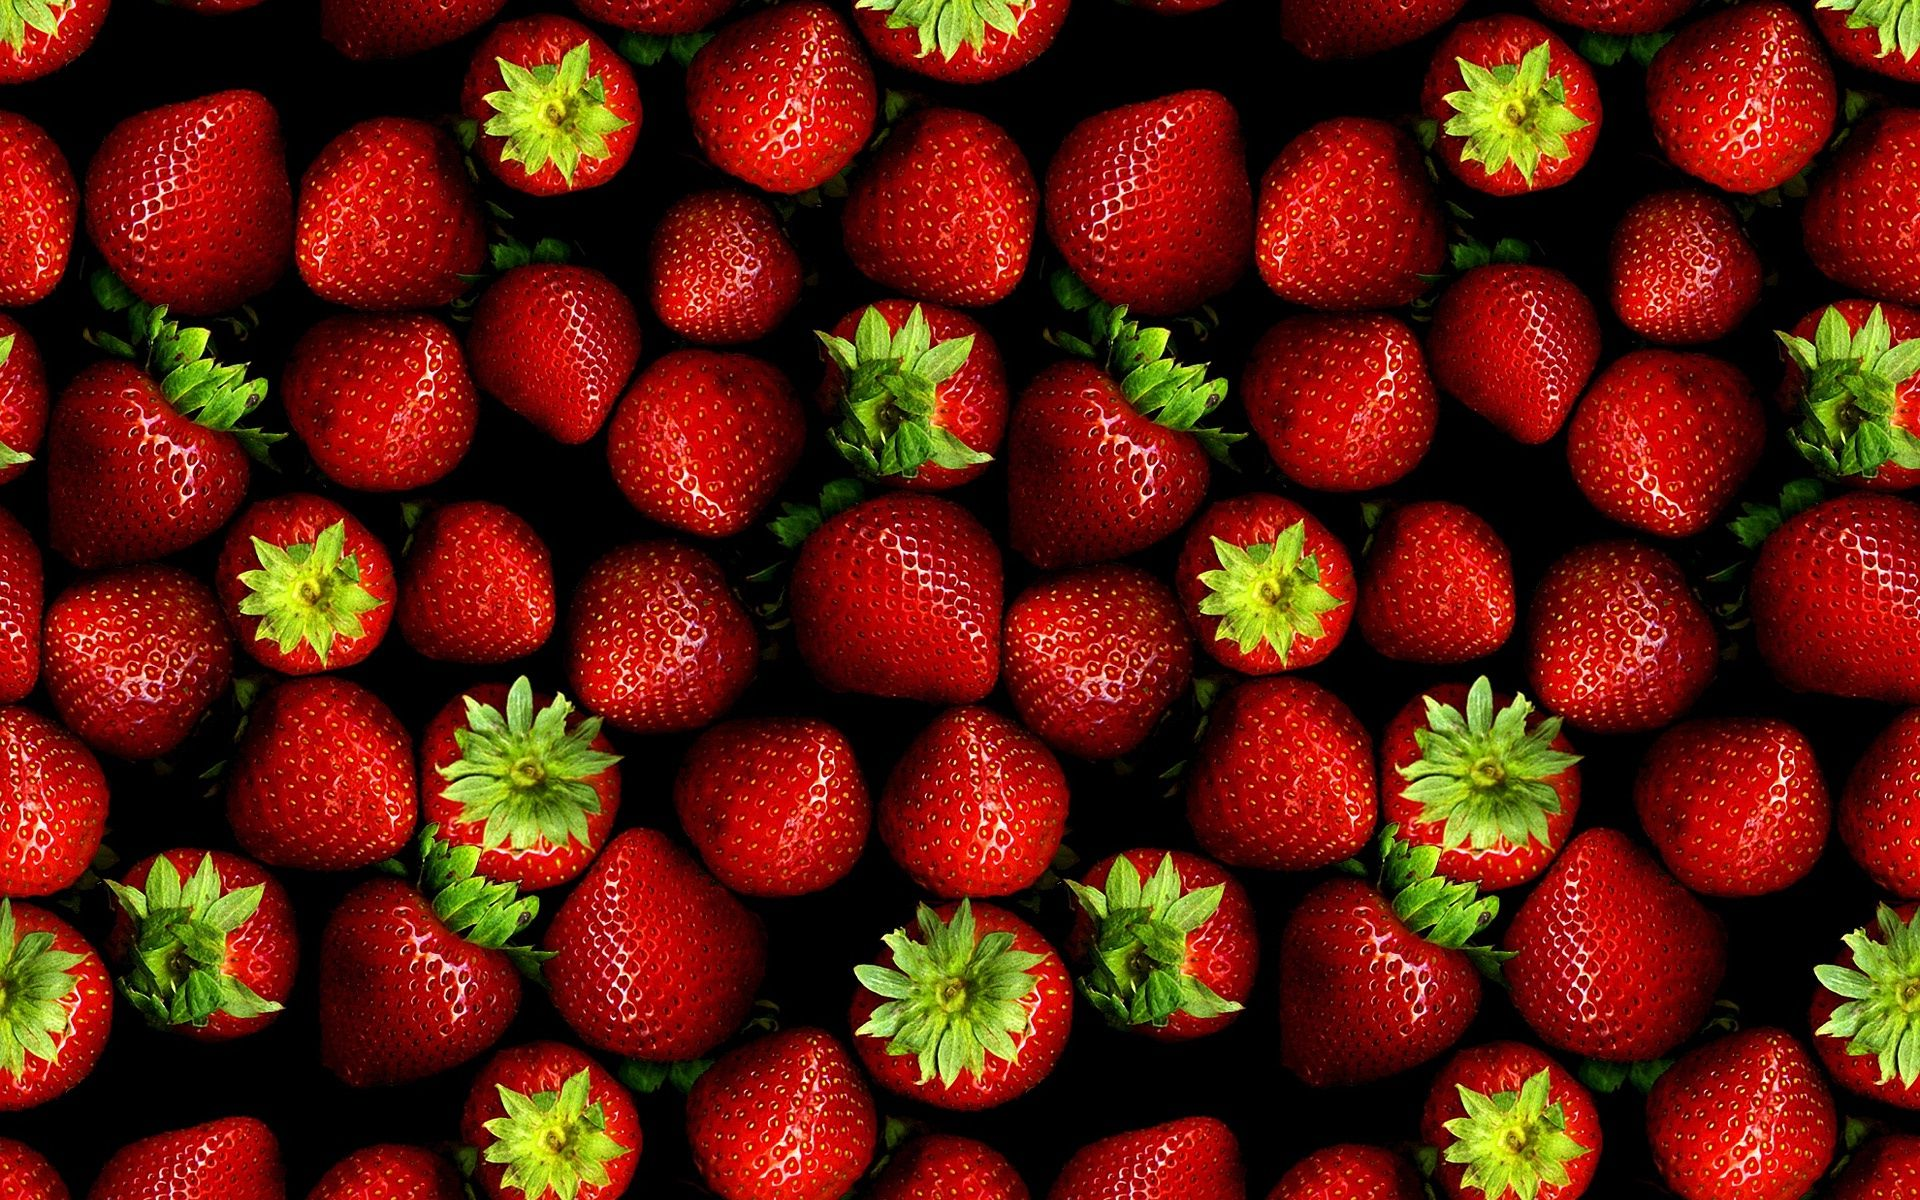 Red Strawberries Background (click to view)